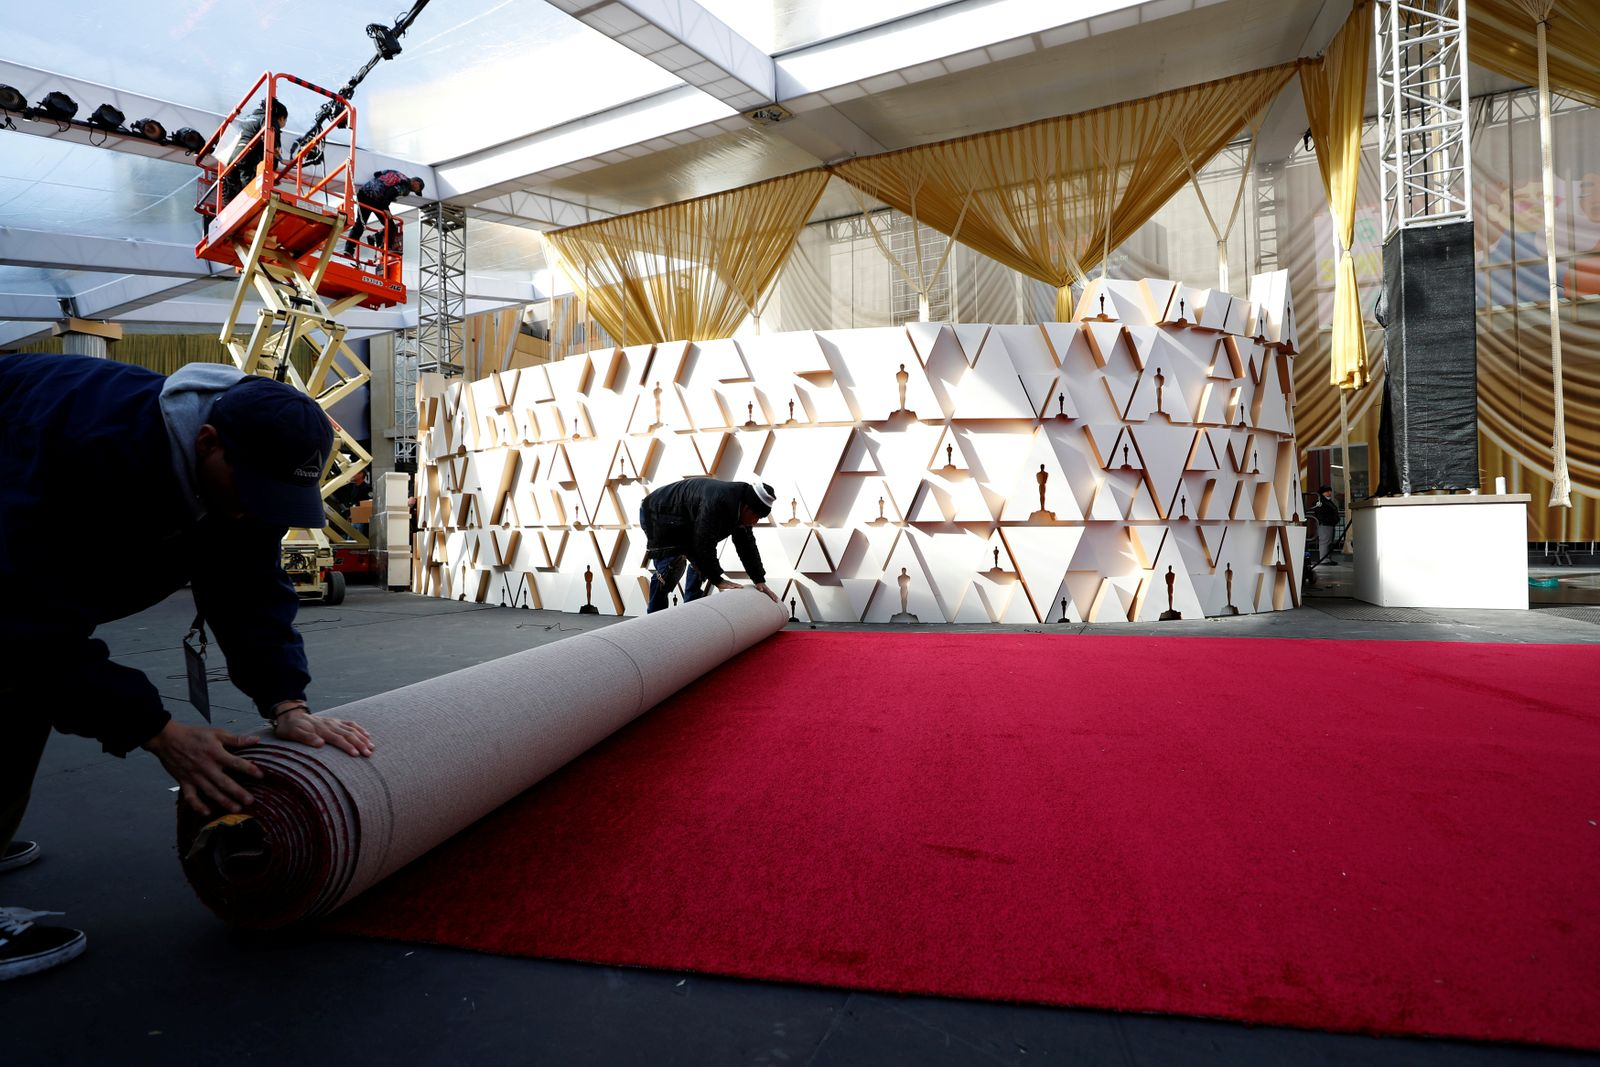 Workers set up the red carpet area in preparation for the 92nd Academy Awards outside Dolby theatre in Los Angeles